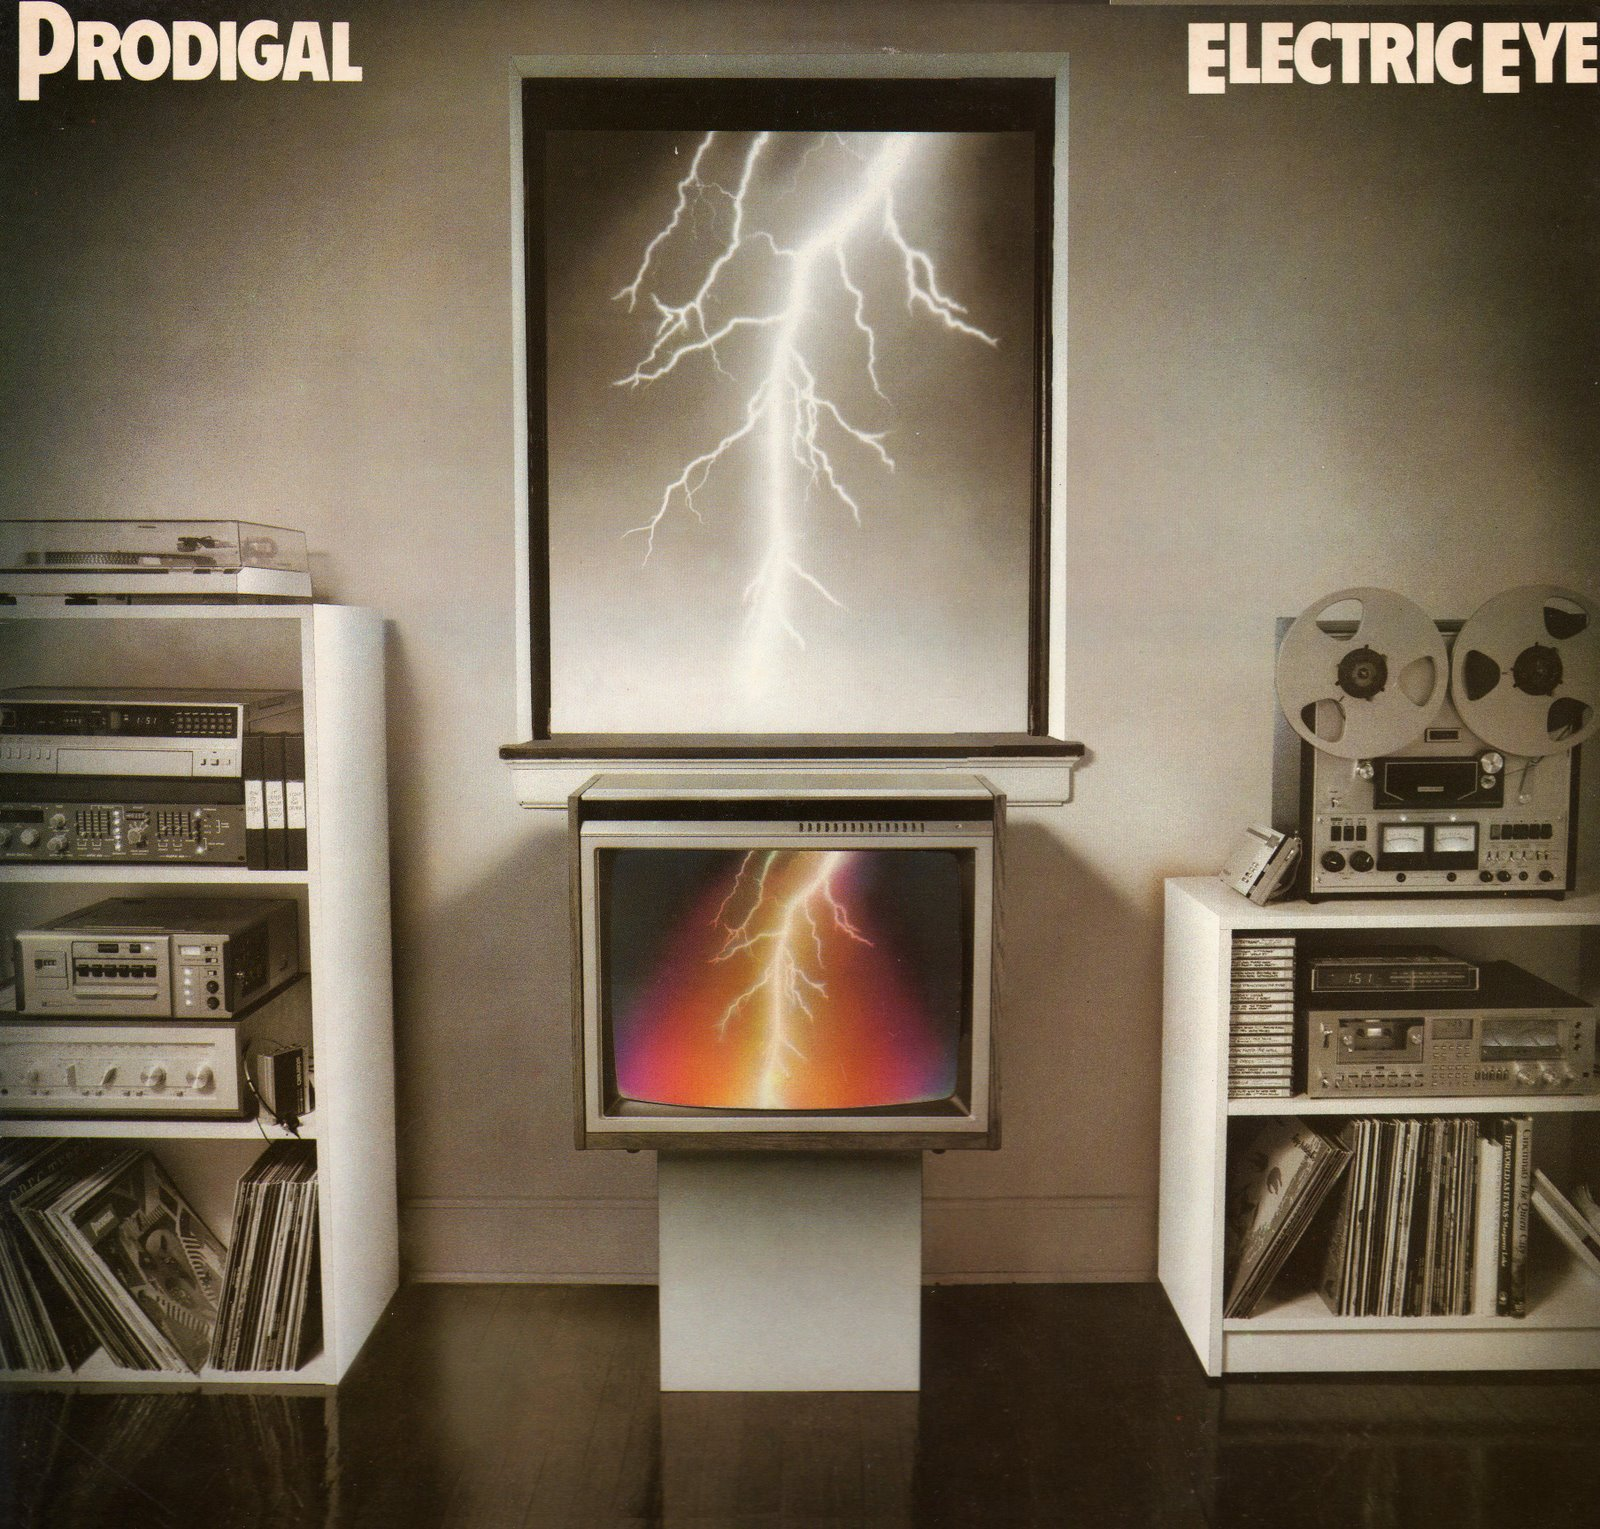 Prodigal - Electric Eye